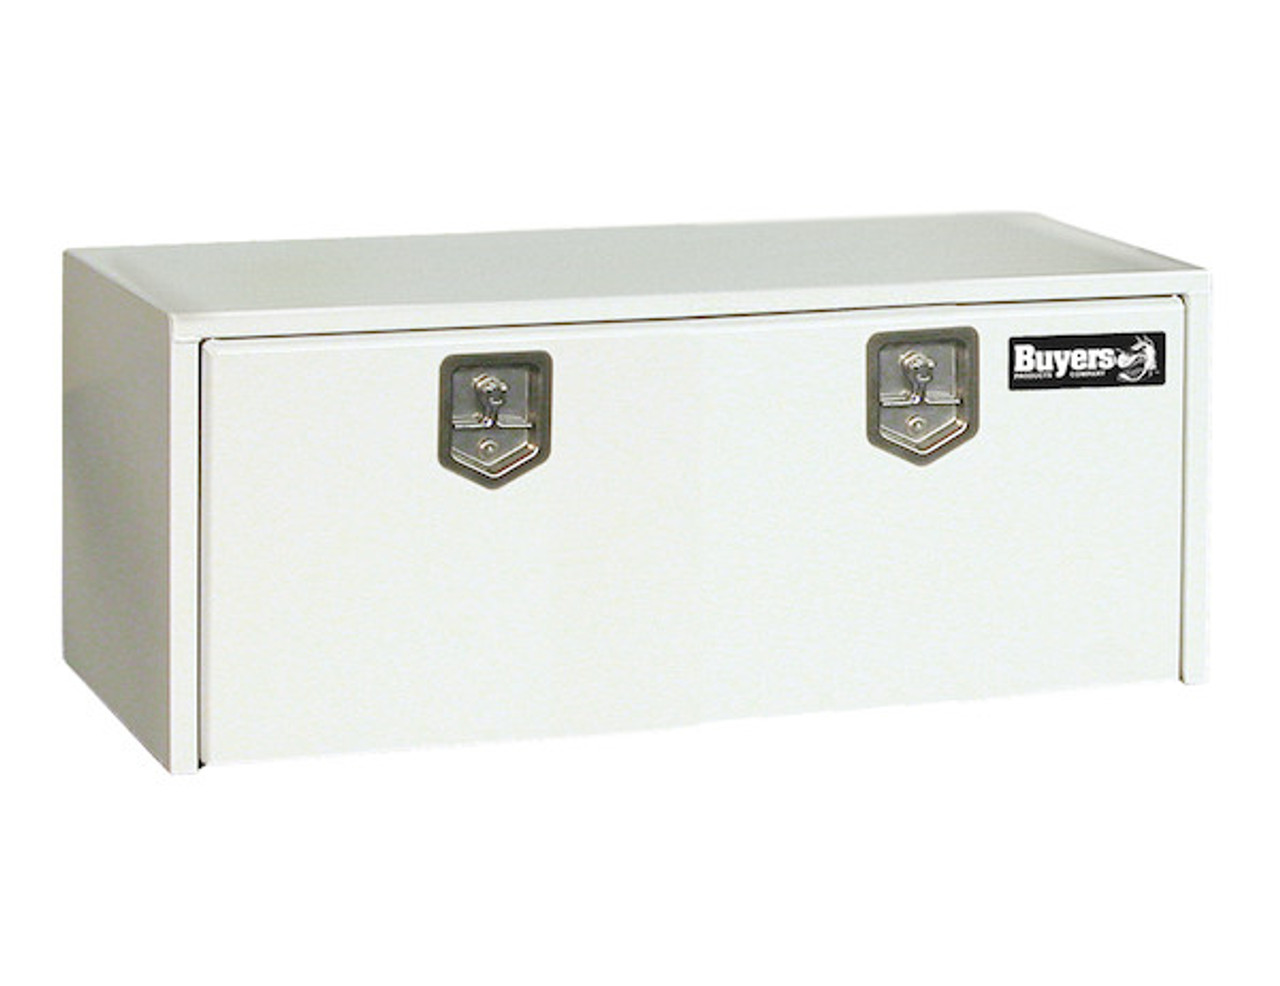 """1708410 BUYERS PRODUCTS WHITE STEEL UNDERBODY TRUCK BOX TOOLBOX 18""""HX24""""DX48""""W"""